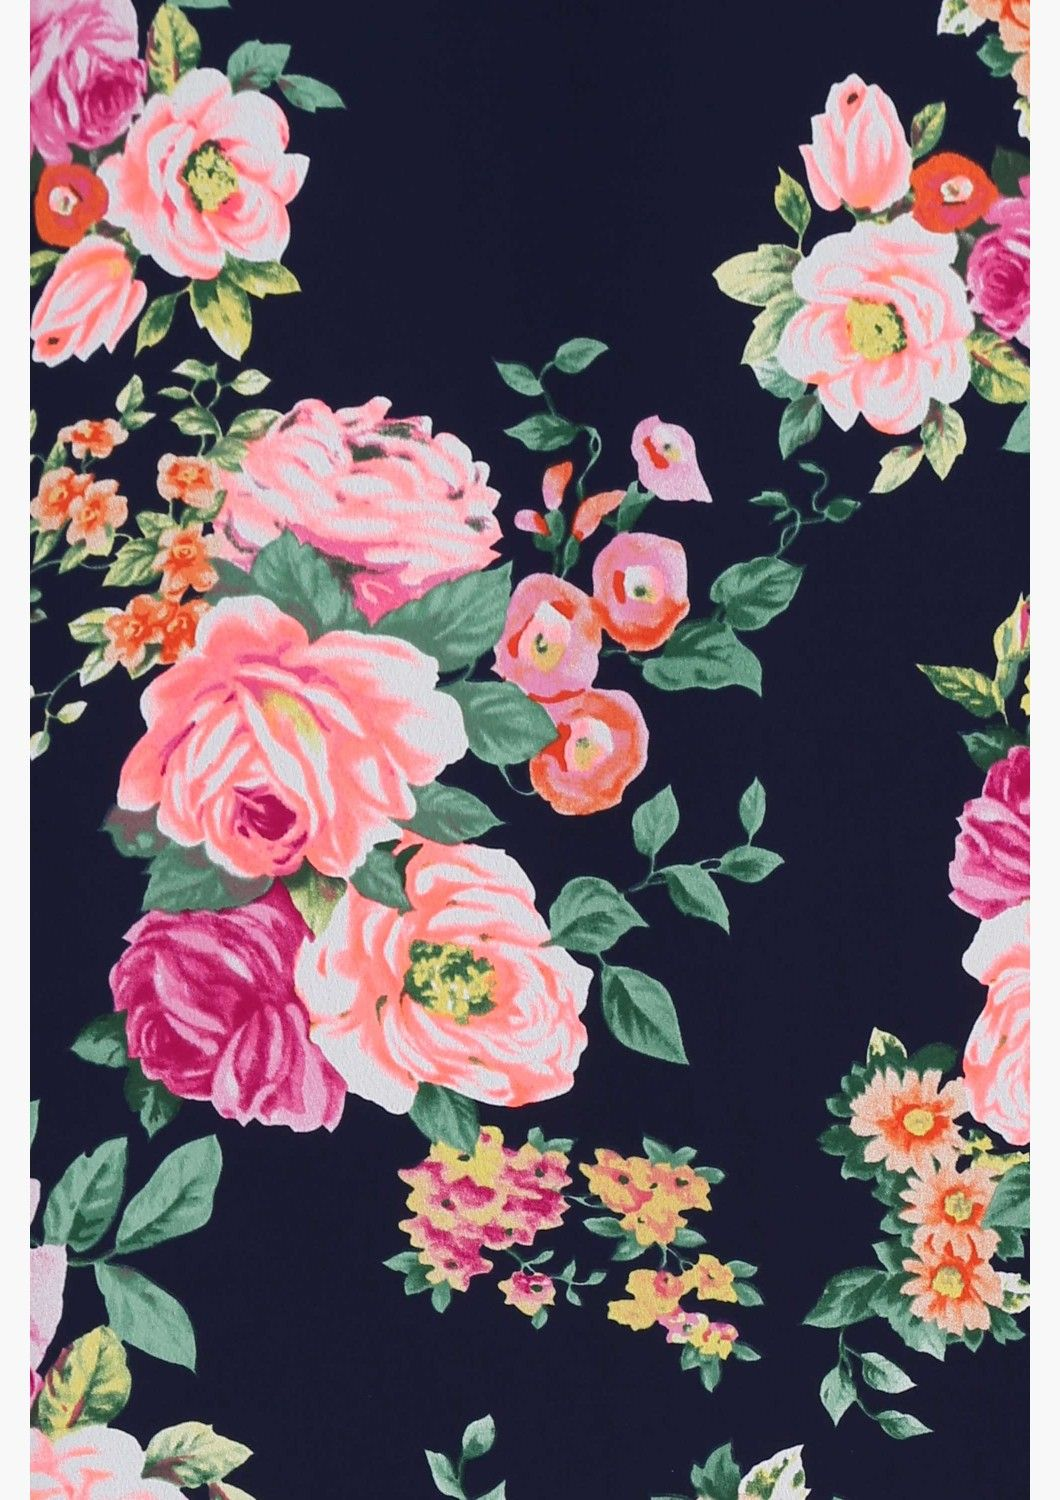 Flowers floral vintage pinterest wallpaper gardens and flowers